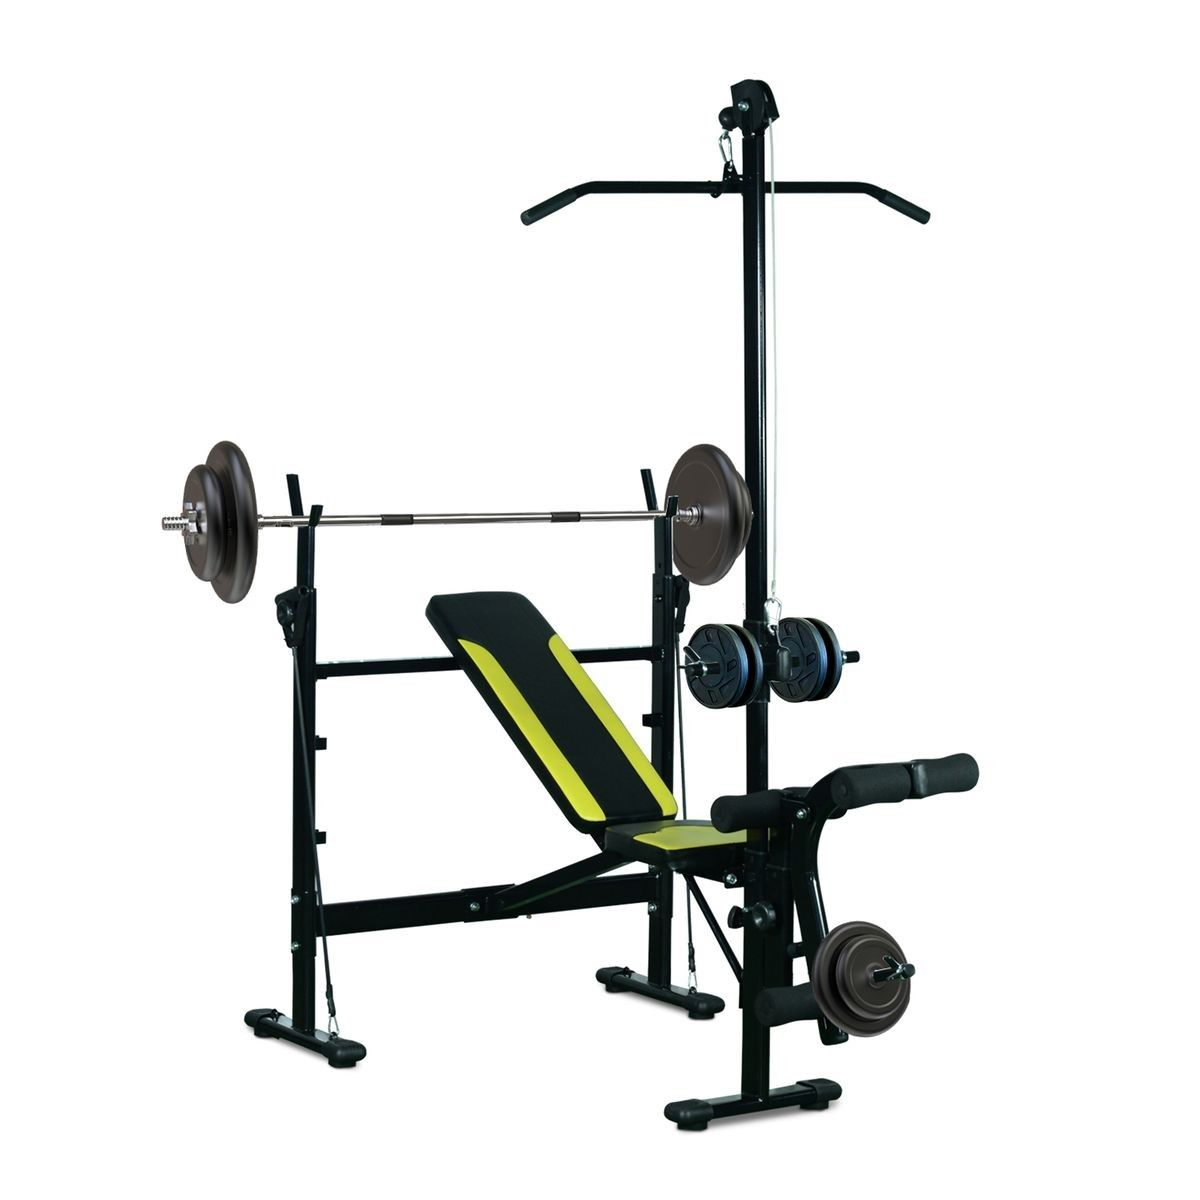 Taille Banc Banc De Musculation Complet Products Pinterest Garage Gym